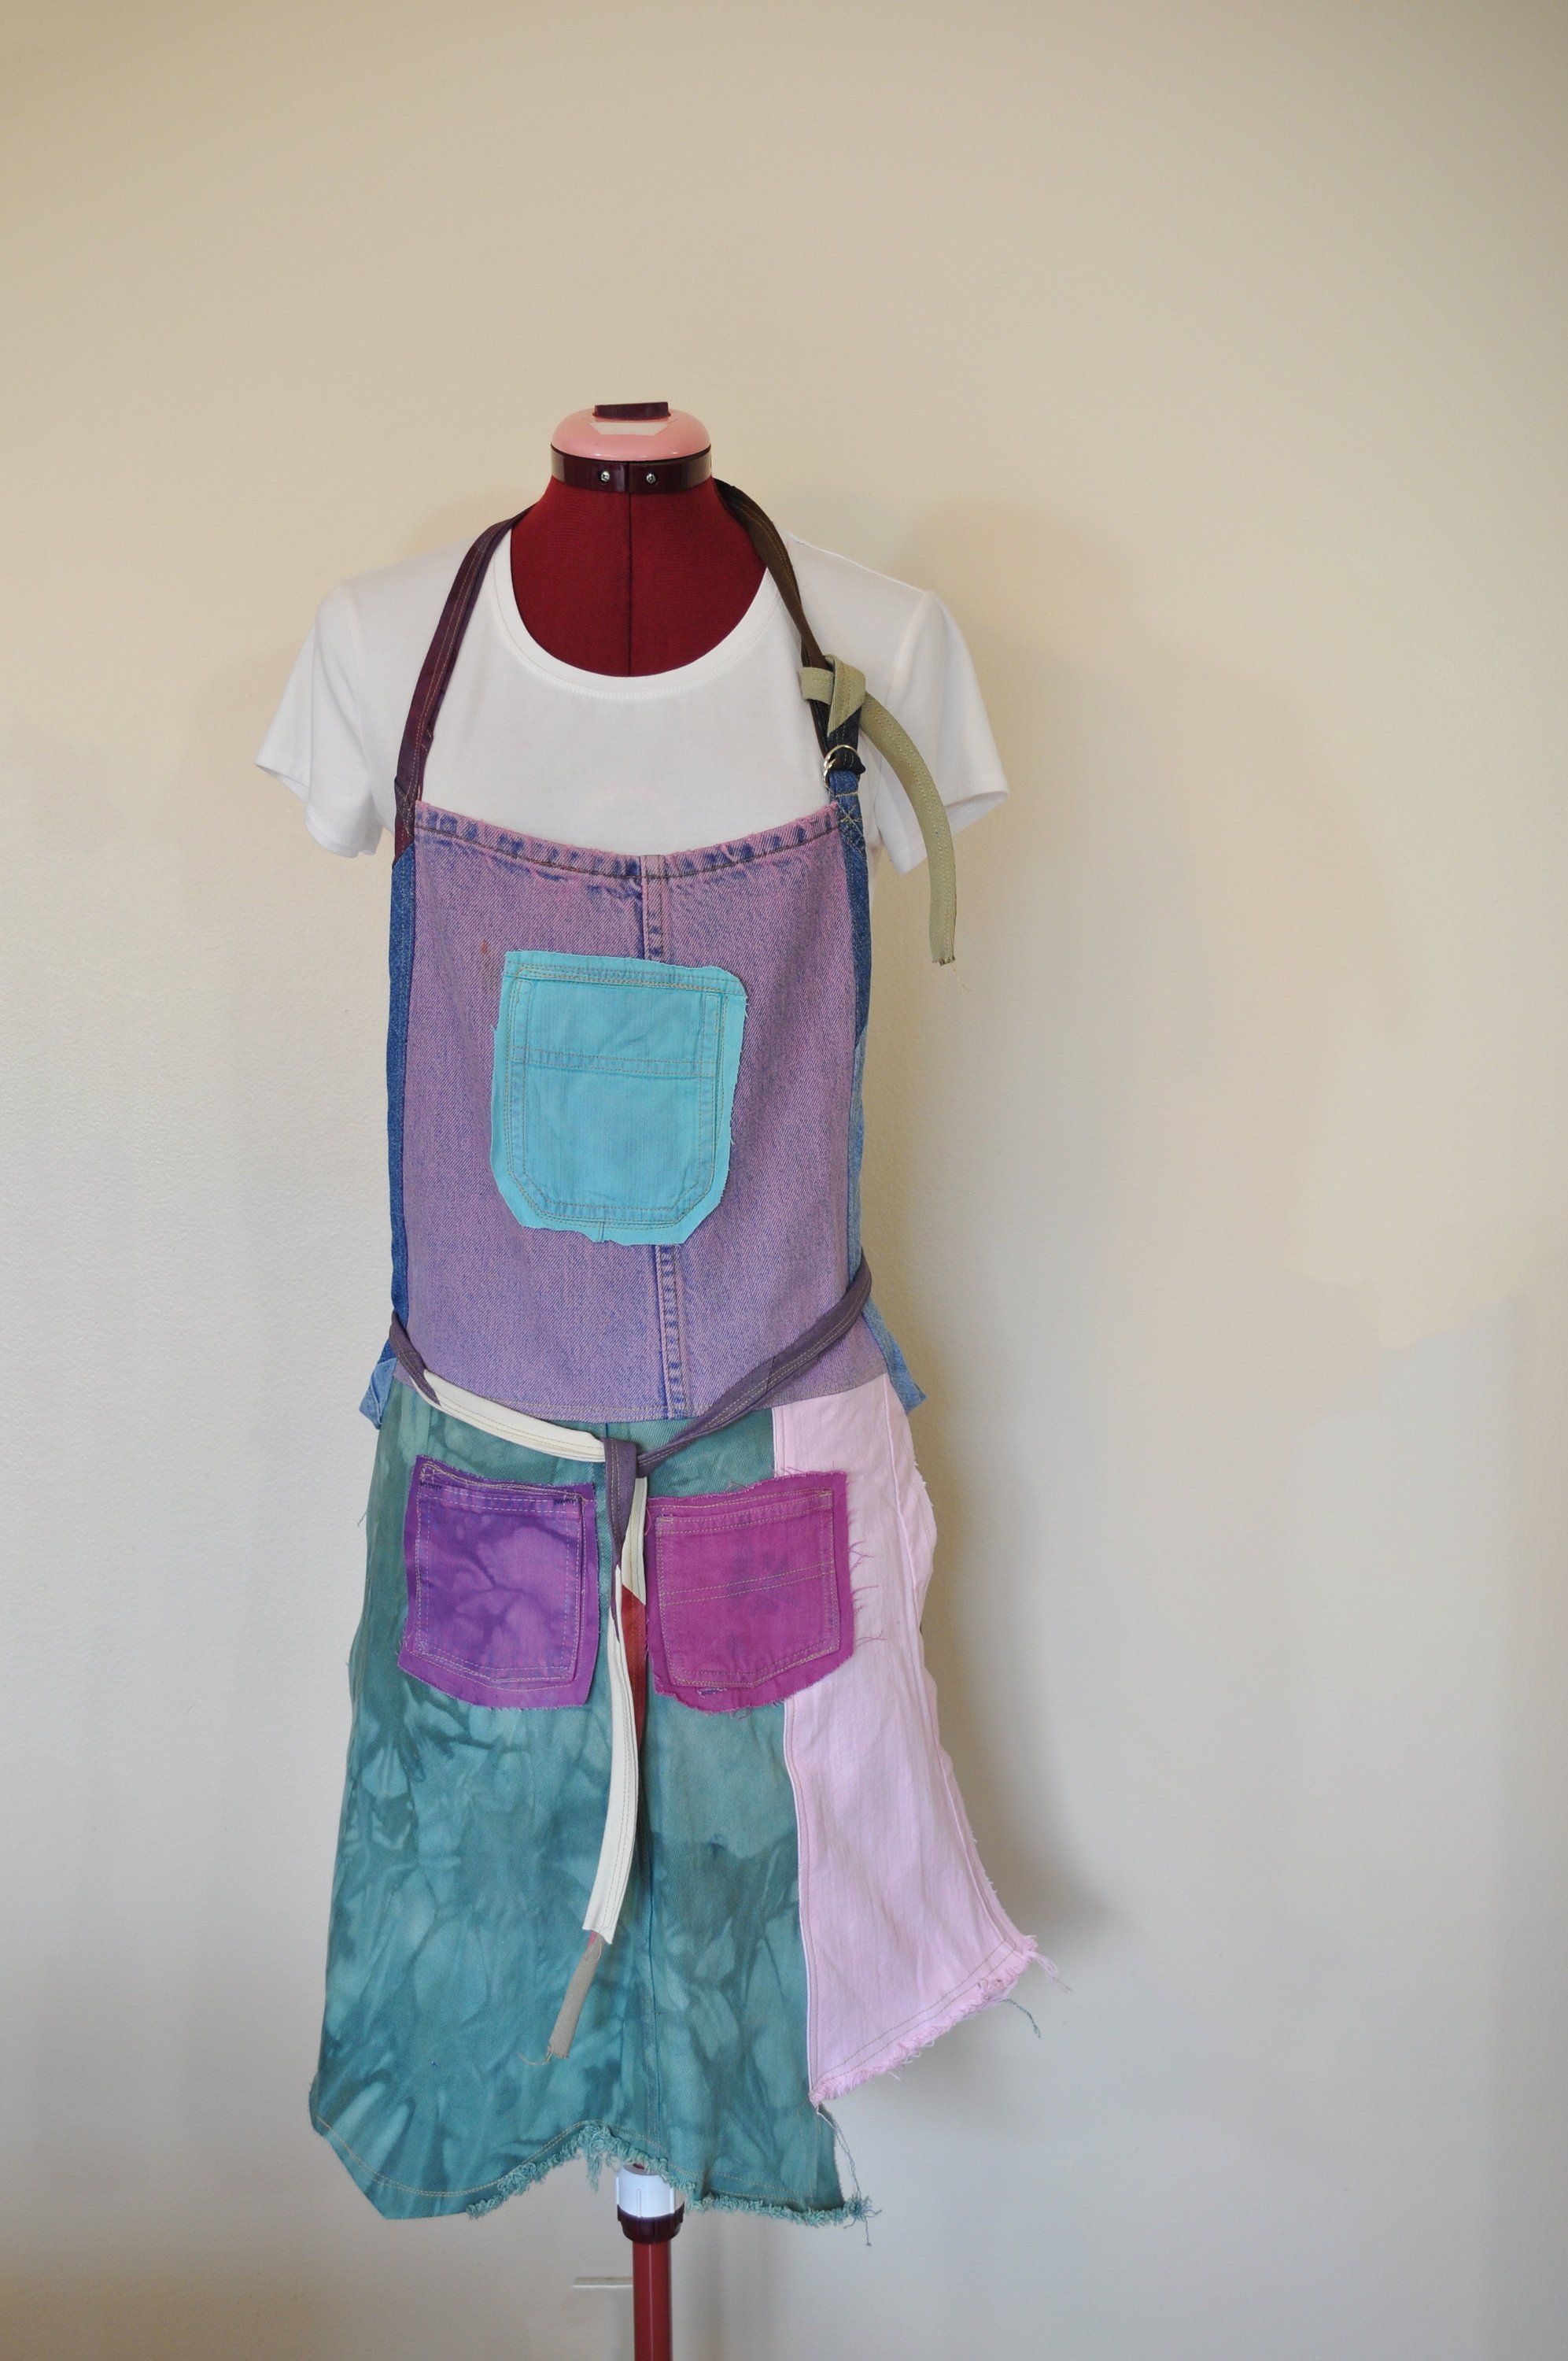 afe45308dfd Dyed Denim Rustic Artists Apron  65 - Green Purple Pink Red Dyed Upcyle  Scrap Denim Fringed Denim - Adult Youth Apron - Sz Small Medium by  DavidsonStudio on ...